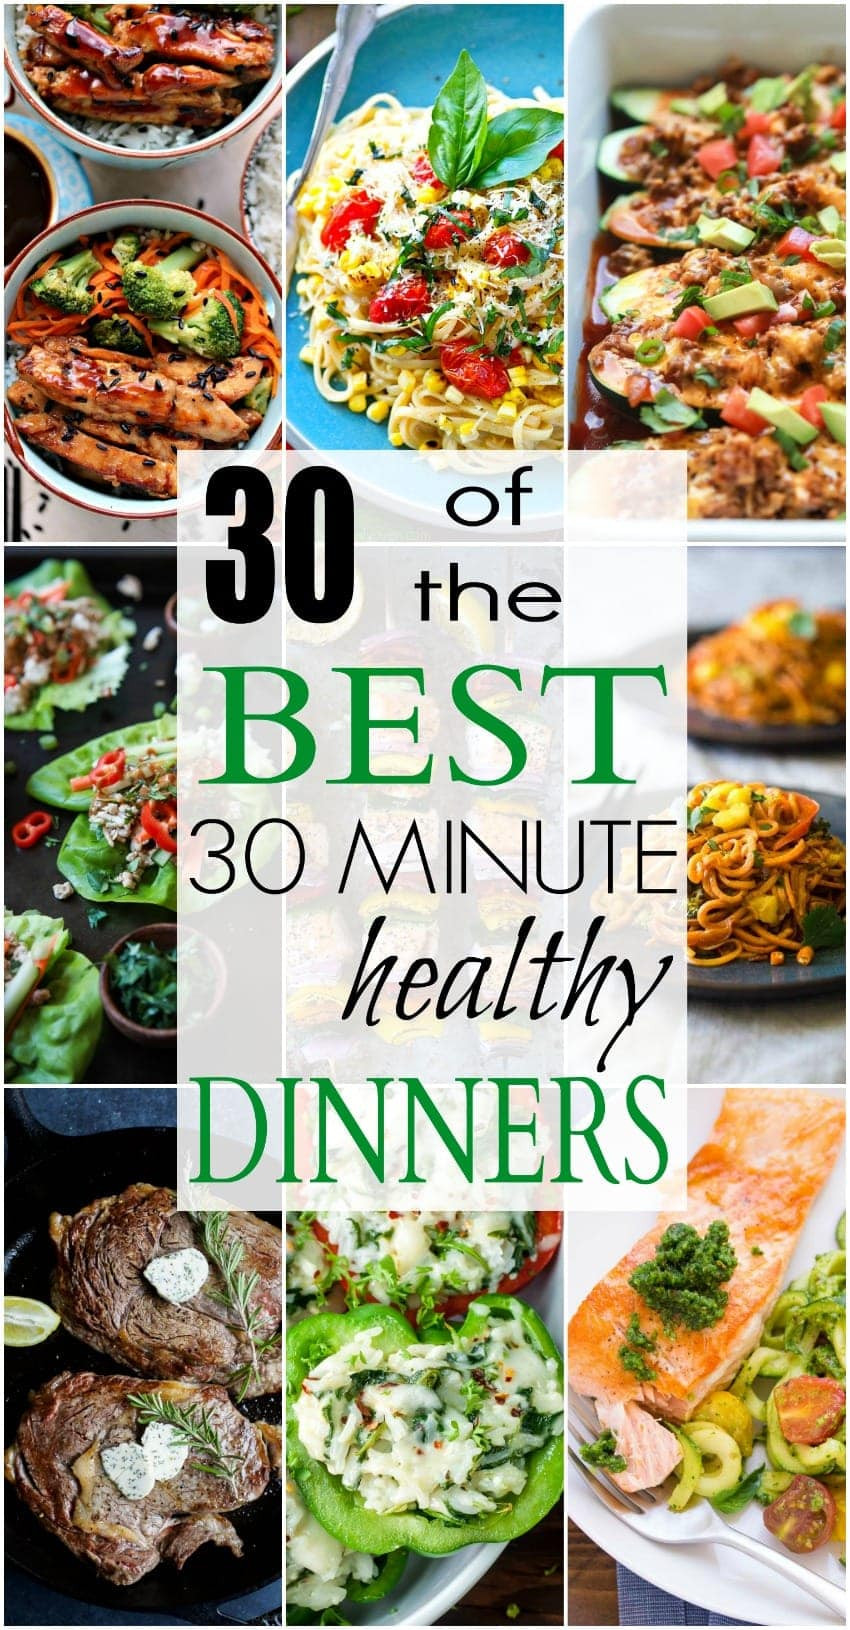 Best Healthy Dinners  30 of The BEST Healthy 30 Minute Dinners